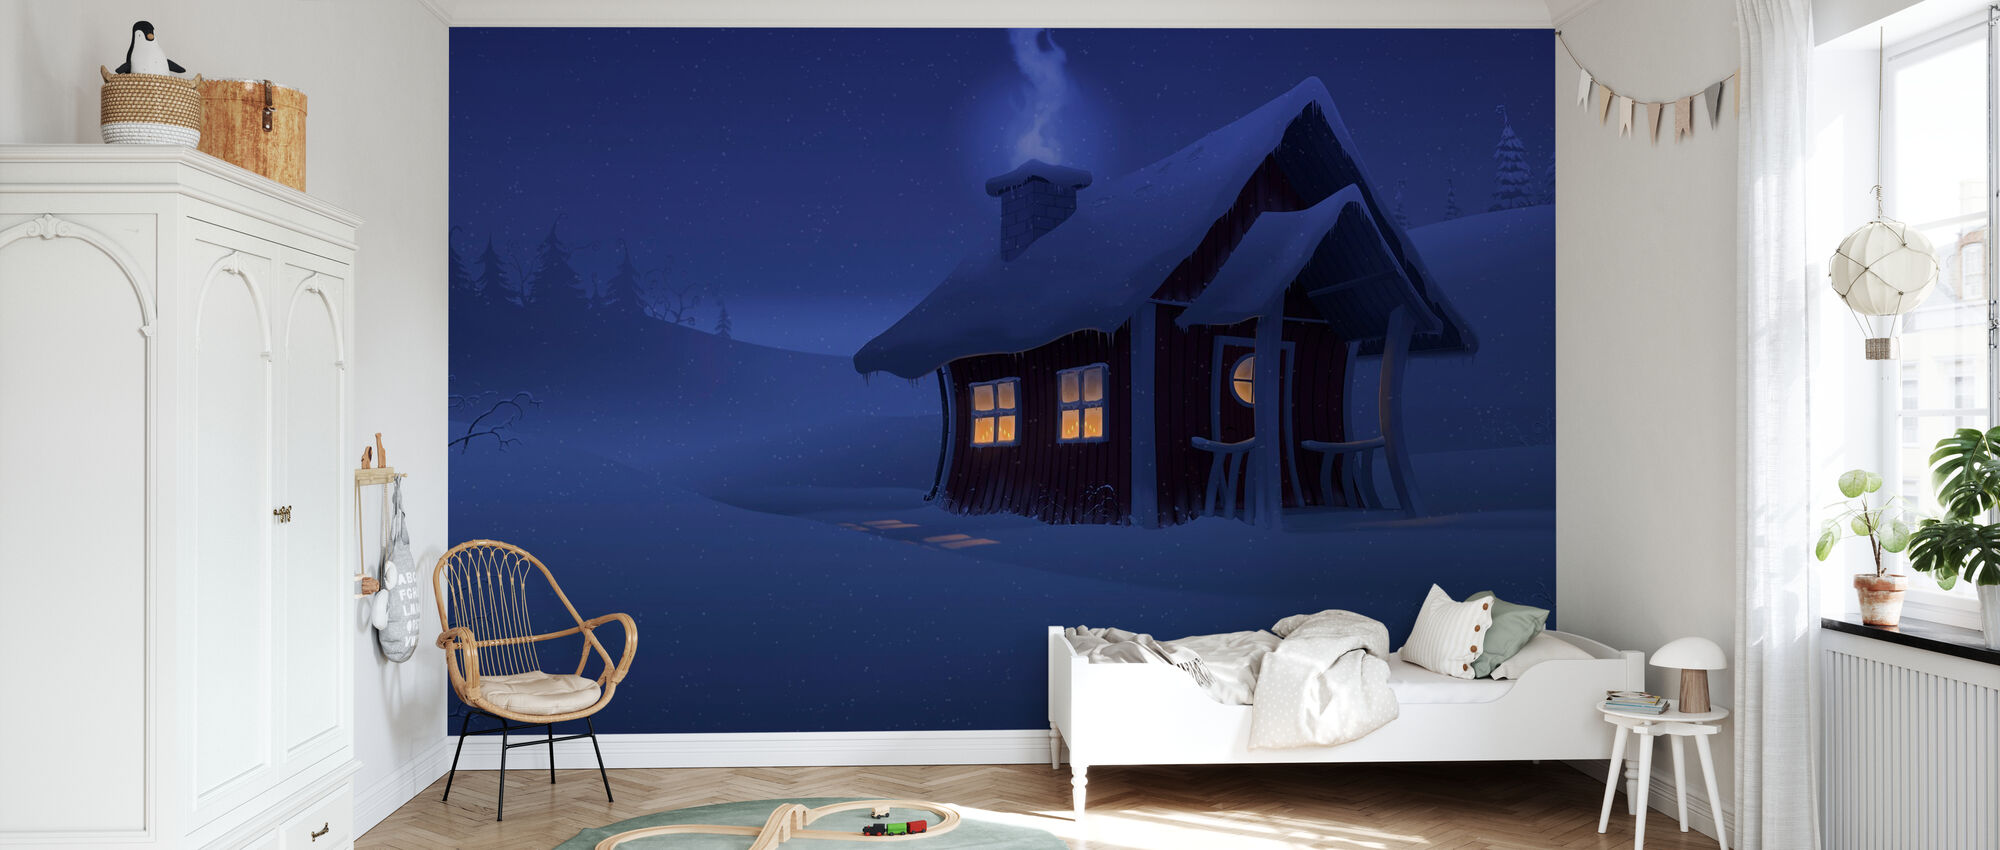 Xmas House - Wallpaper - Kids Room